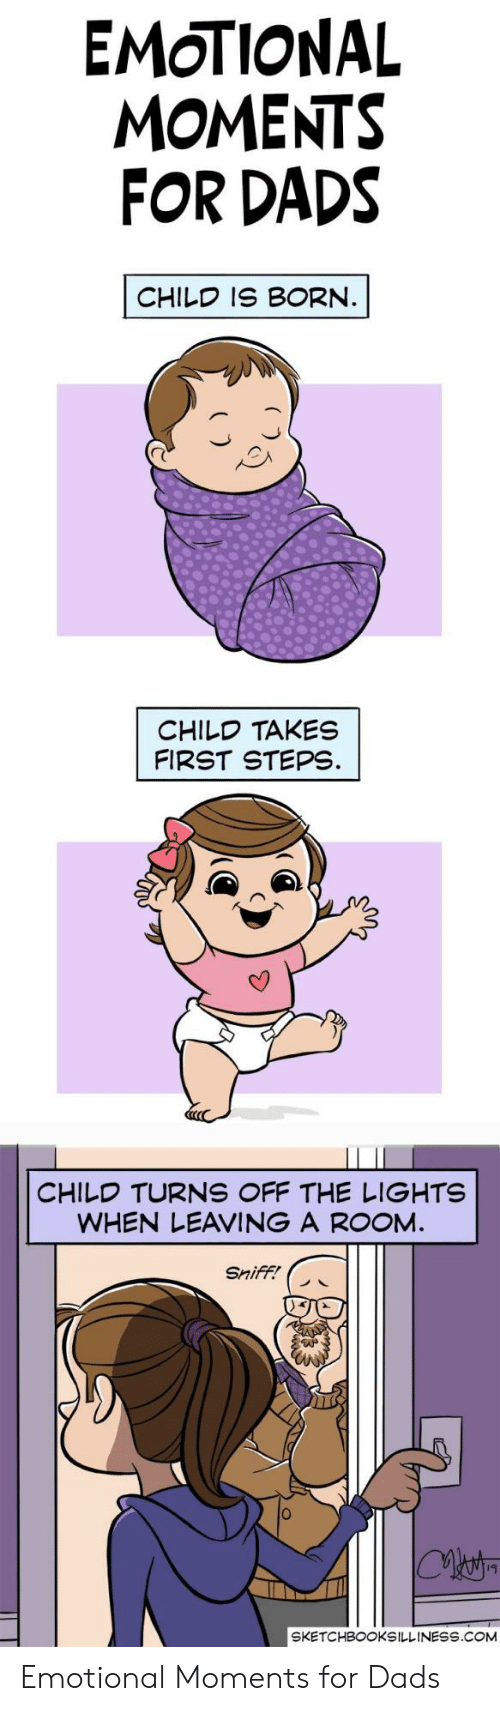 Com, Lights, and First: EMOTIONAL  MOMENTS  FOR DADS  CHILD IS BORN.  CHILD TAKES  FIRST STEPS.  CHILD TURNS OFF THE LIGHTS  WHEN LEAVING A ROOM.  Sniff!  SKETCHBOOKSILLINESS.COM Emotional Moments for Dads